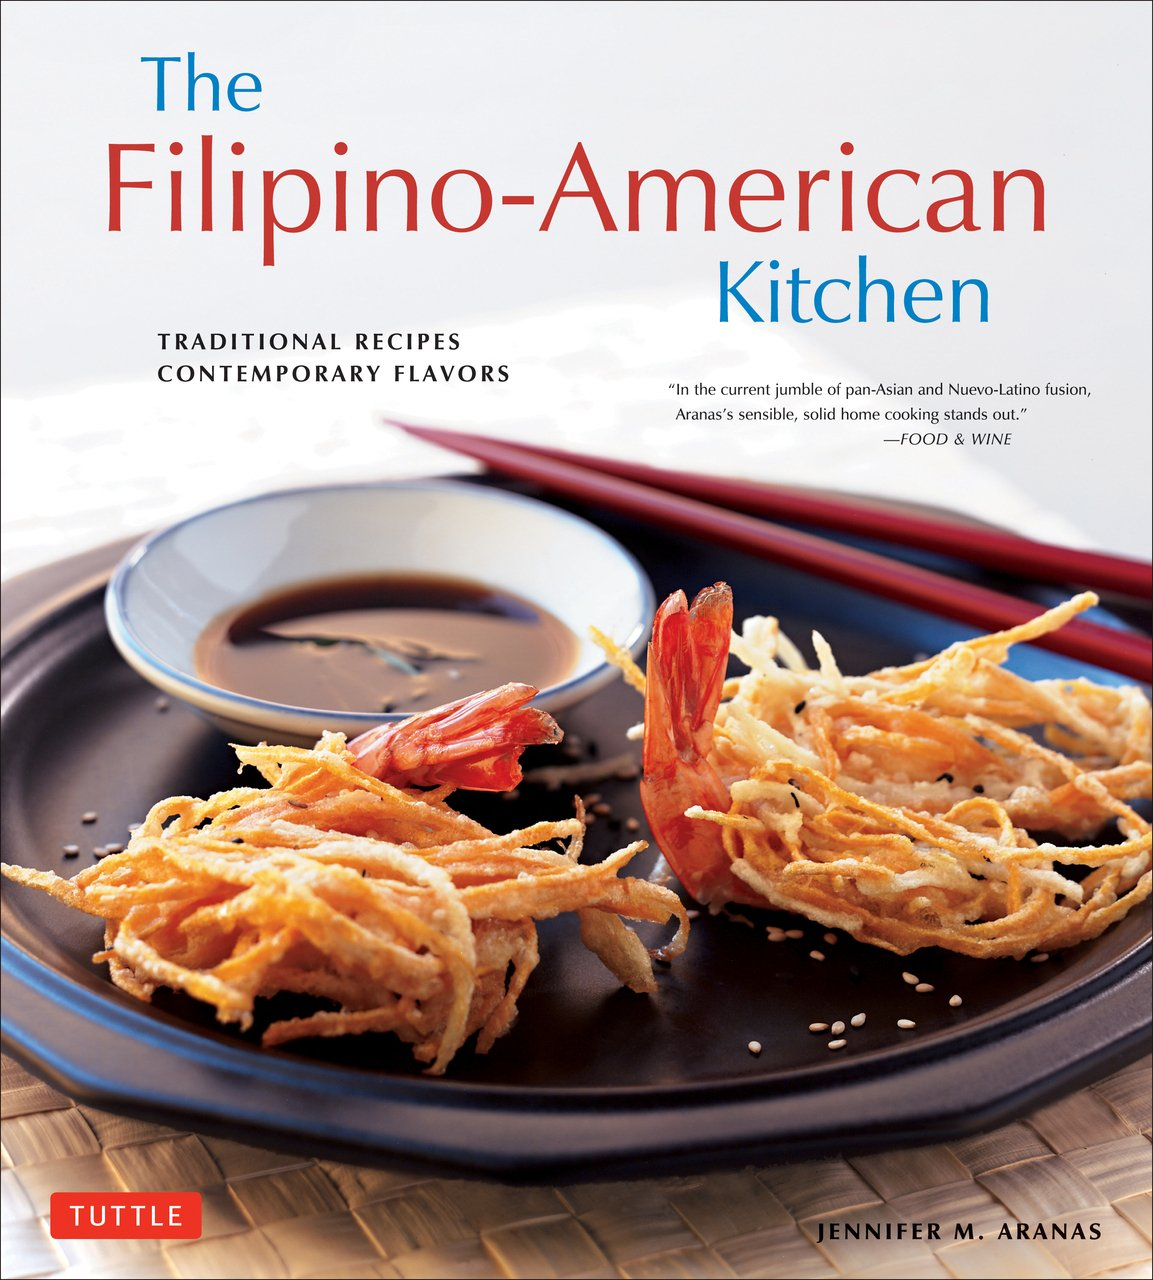 Filipino american kitchen traditional recipes contemporary flavors filipino american kitchen traditional recipes contemporary flavors jennifer m aranas brian briggs michael lande 0000804846200 amazon books forumfinder Images